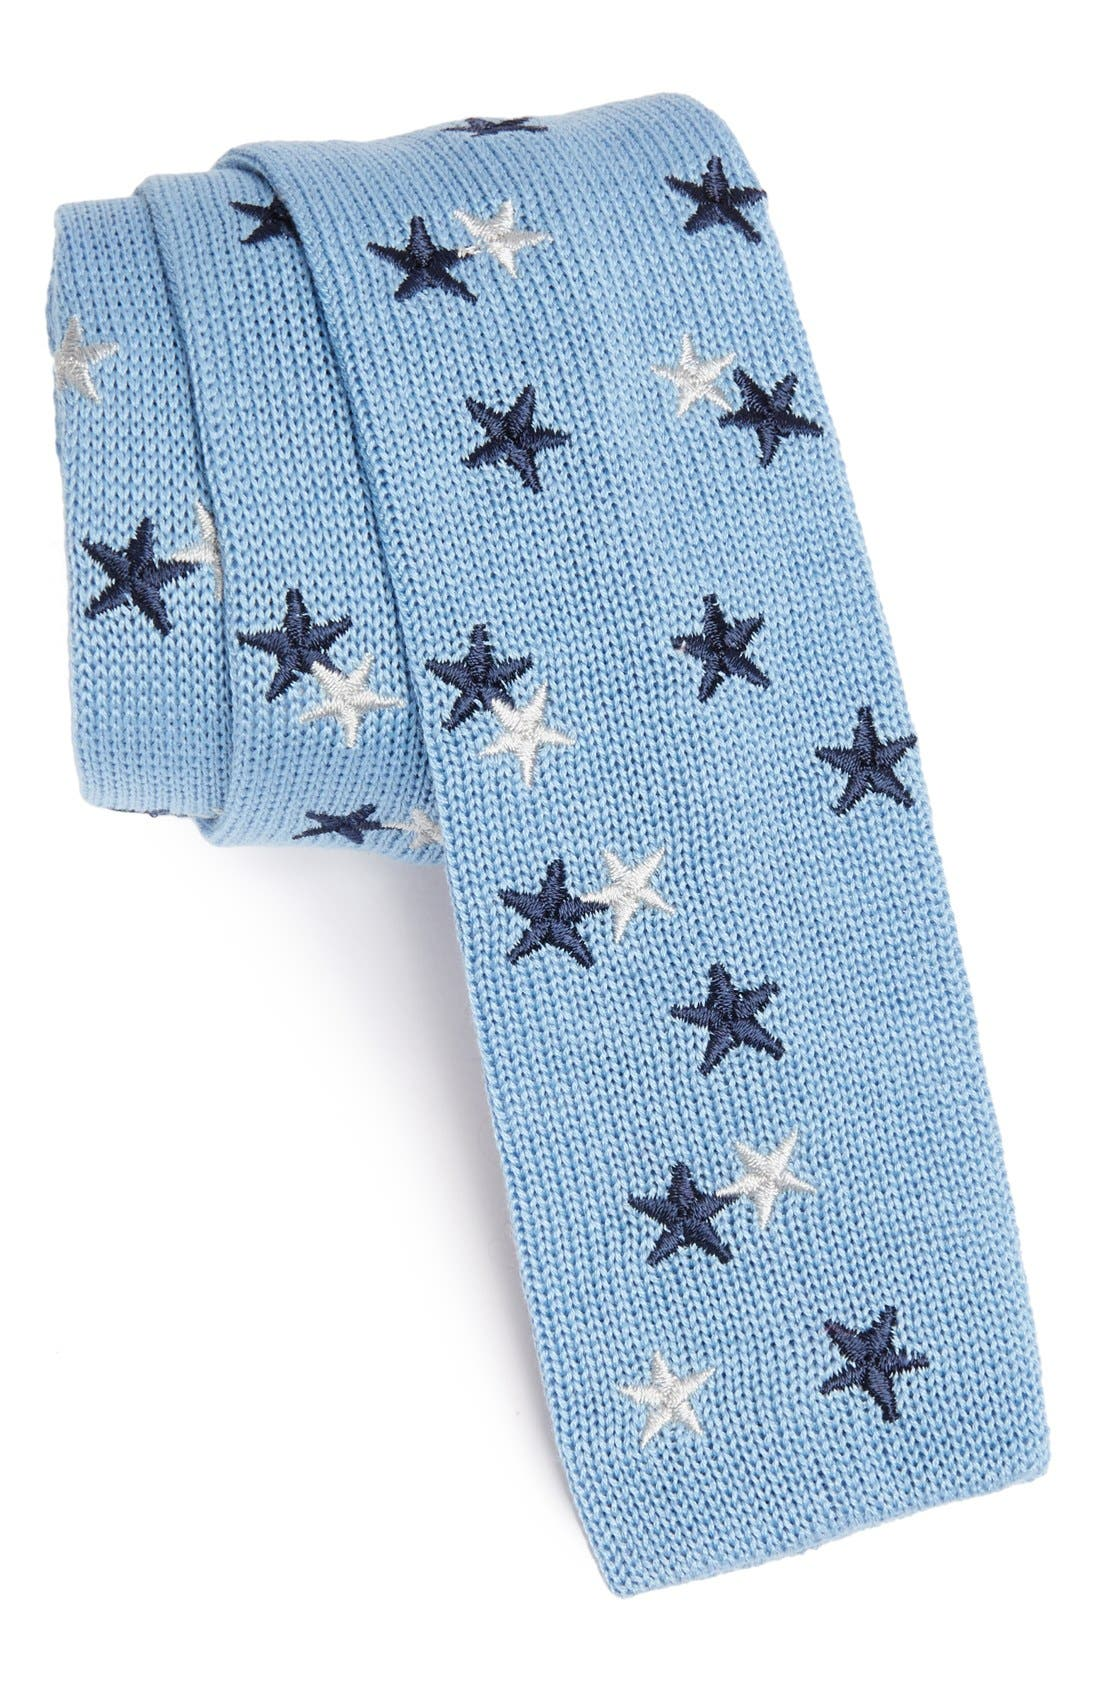 Alternate Image 1 Selected - Ivy Prepster 'Stars' Knit Cotton Tie